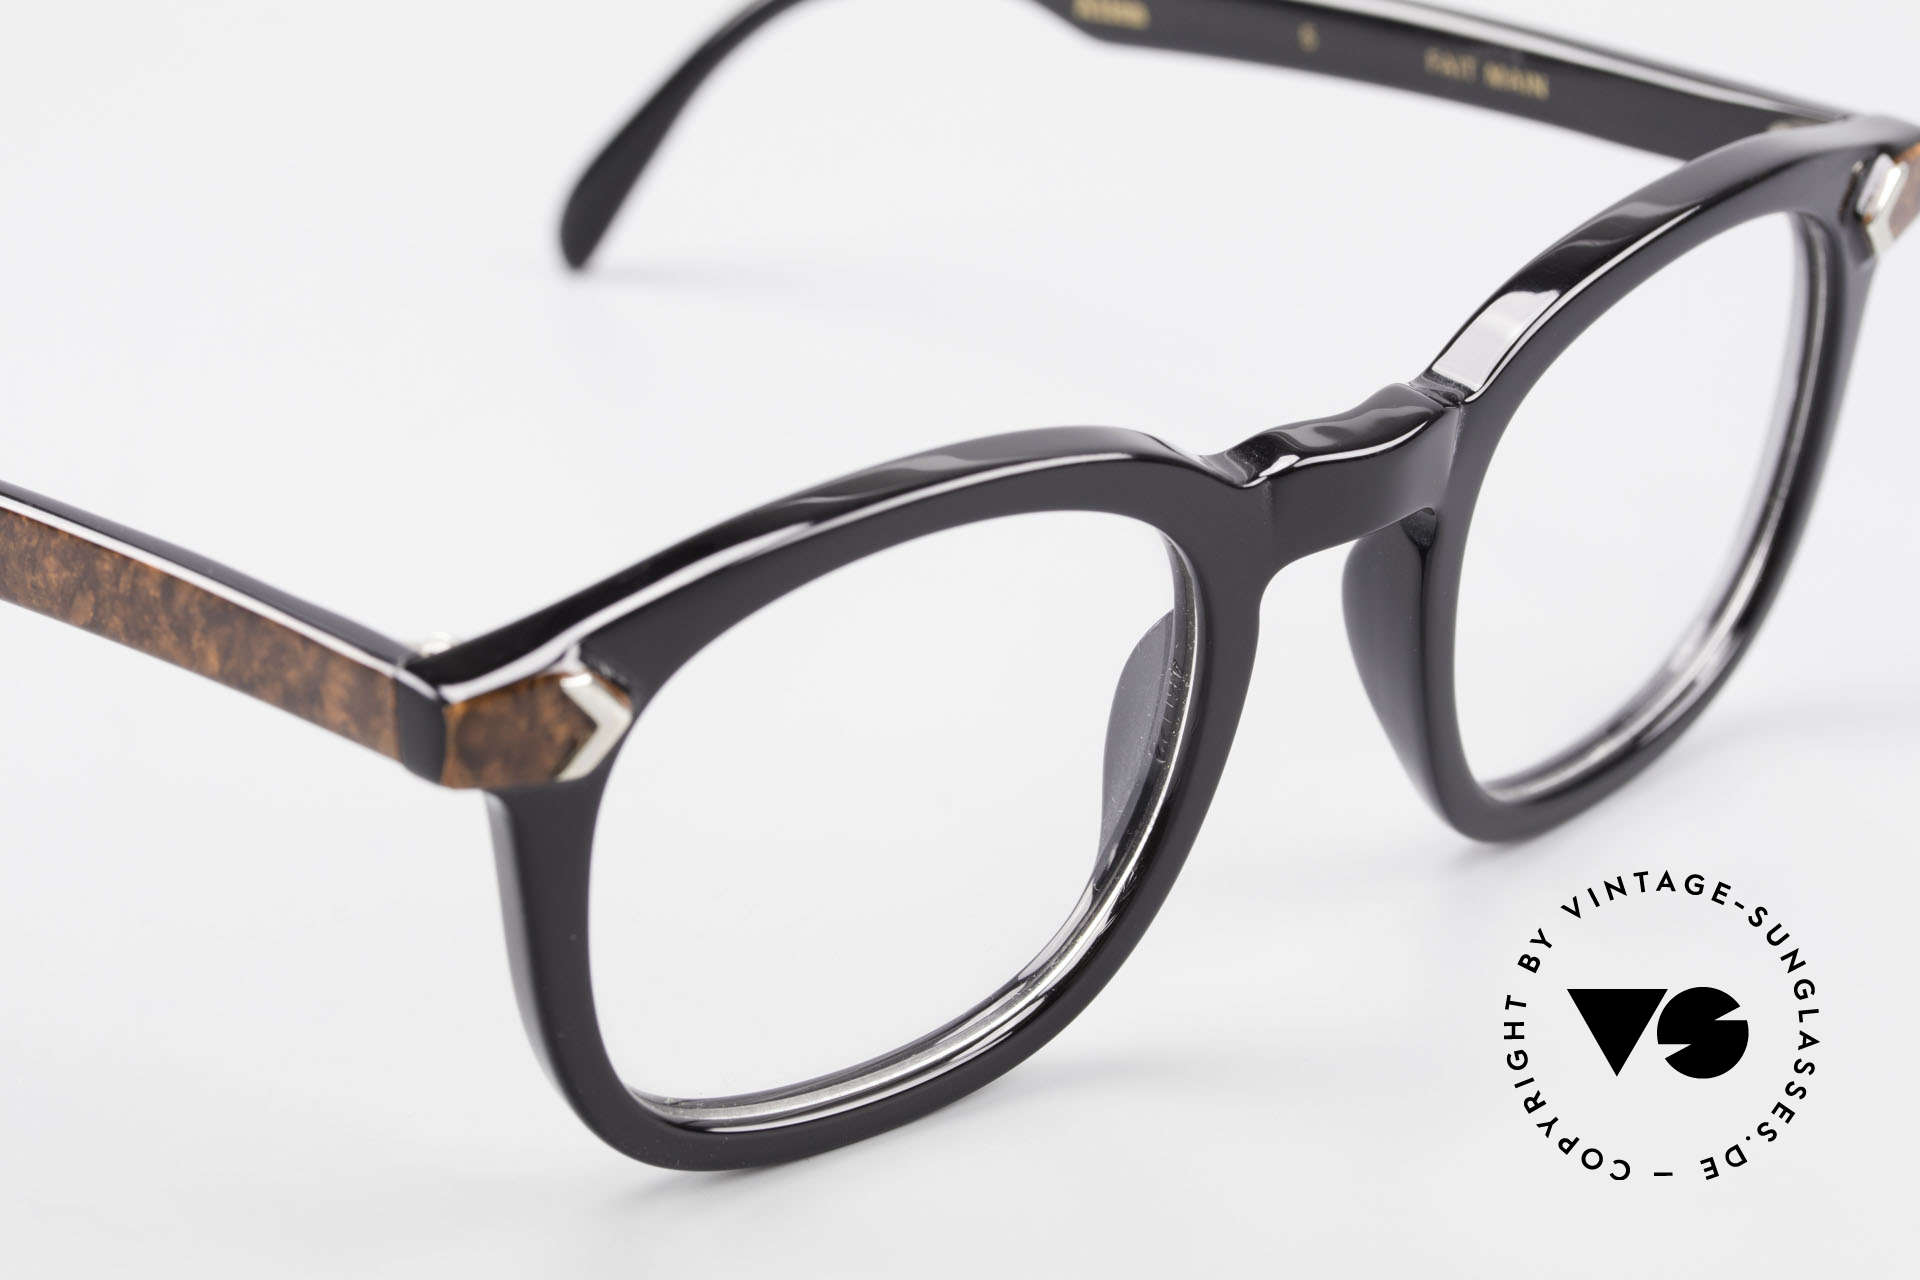 Traction Productions Allen Woody Allen Glasses 1980's, UNWORN (like all our rare vintage 80's eyewear), Made for Men and Women